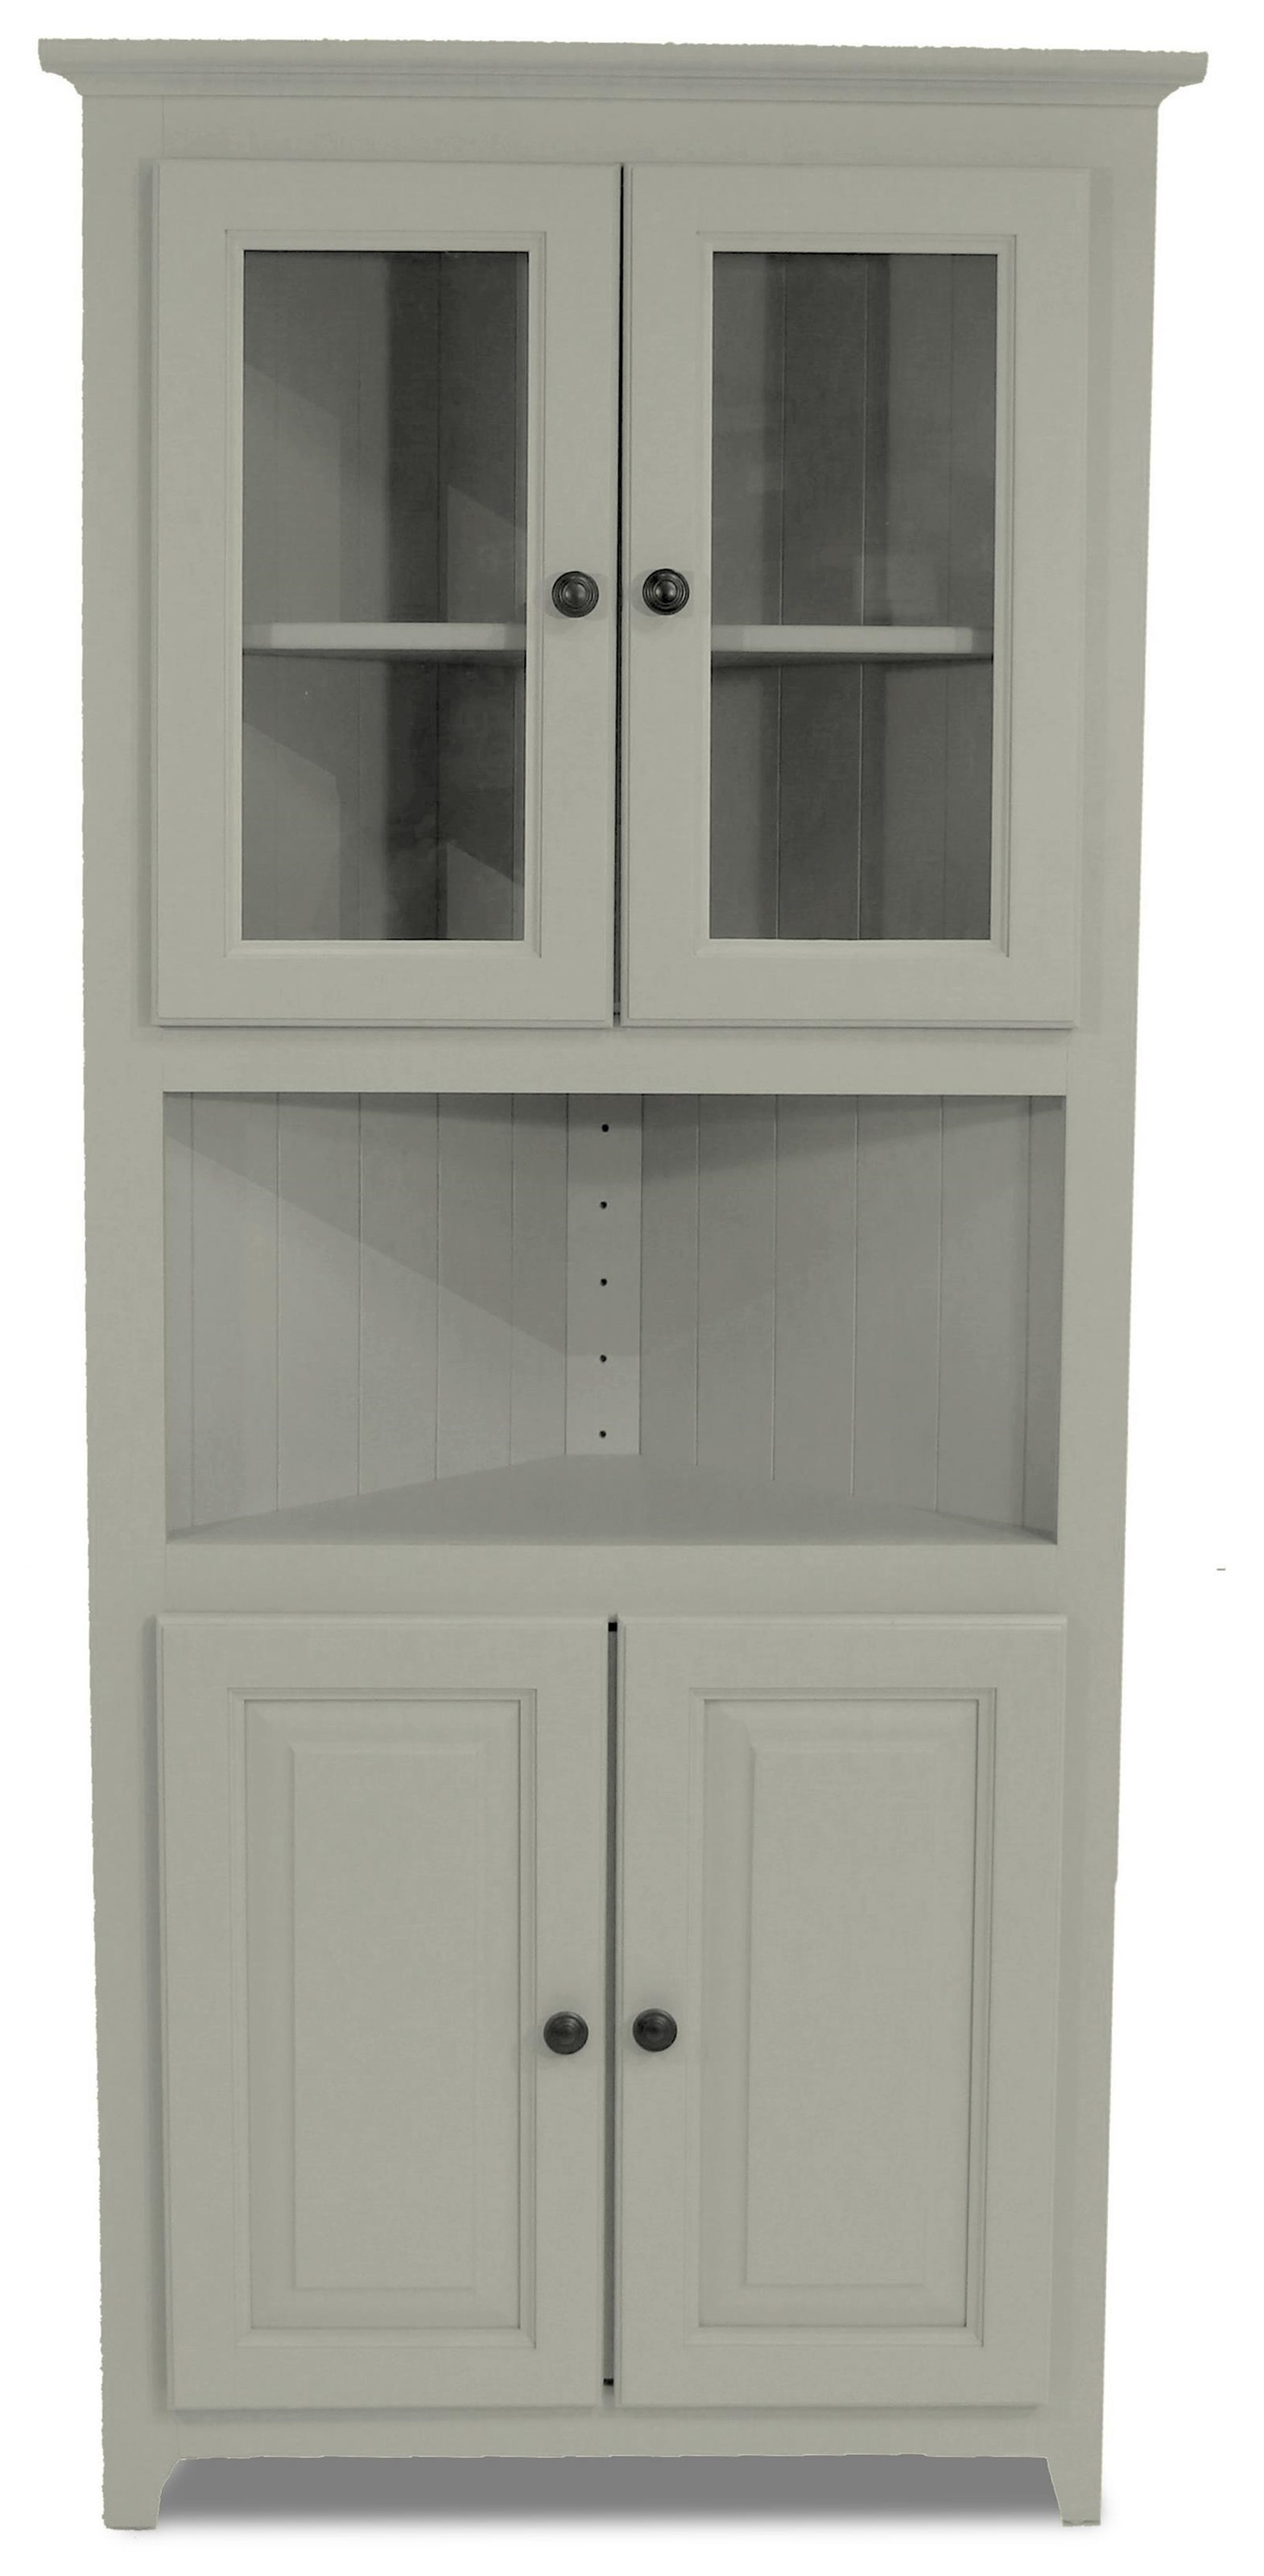 Pantries and Cabinets Corner Cabinet by Archbold Furniture at Johnny Janosik